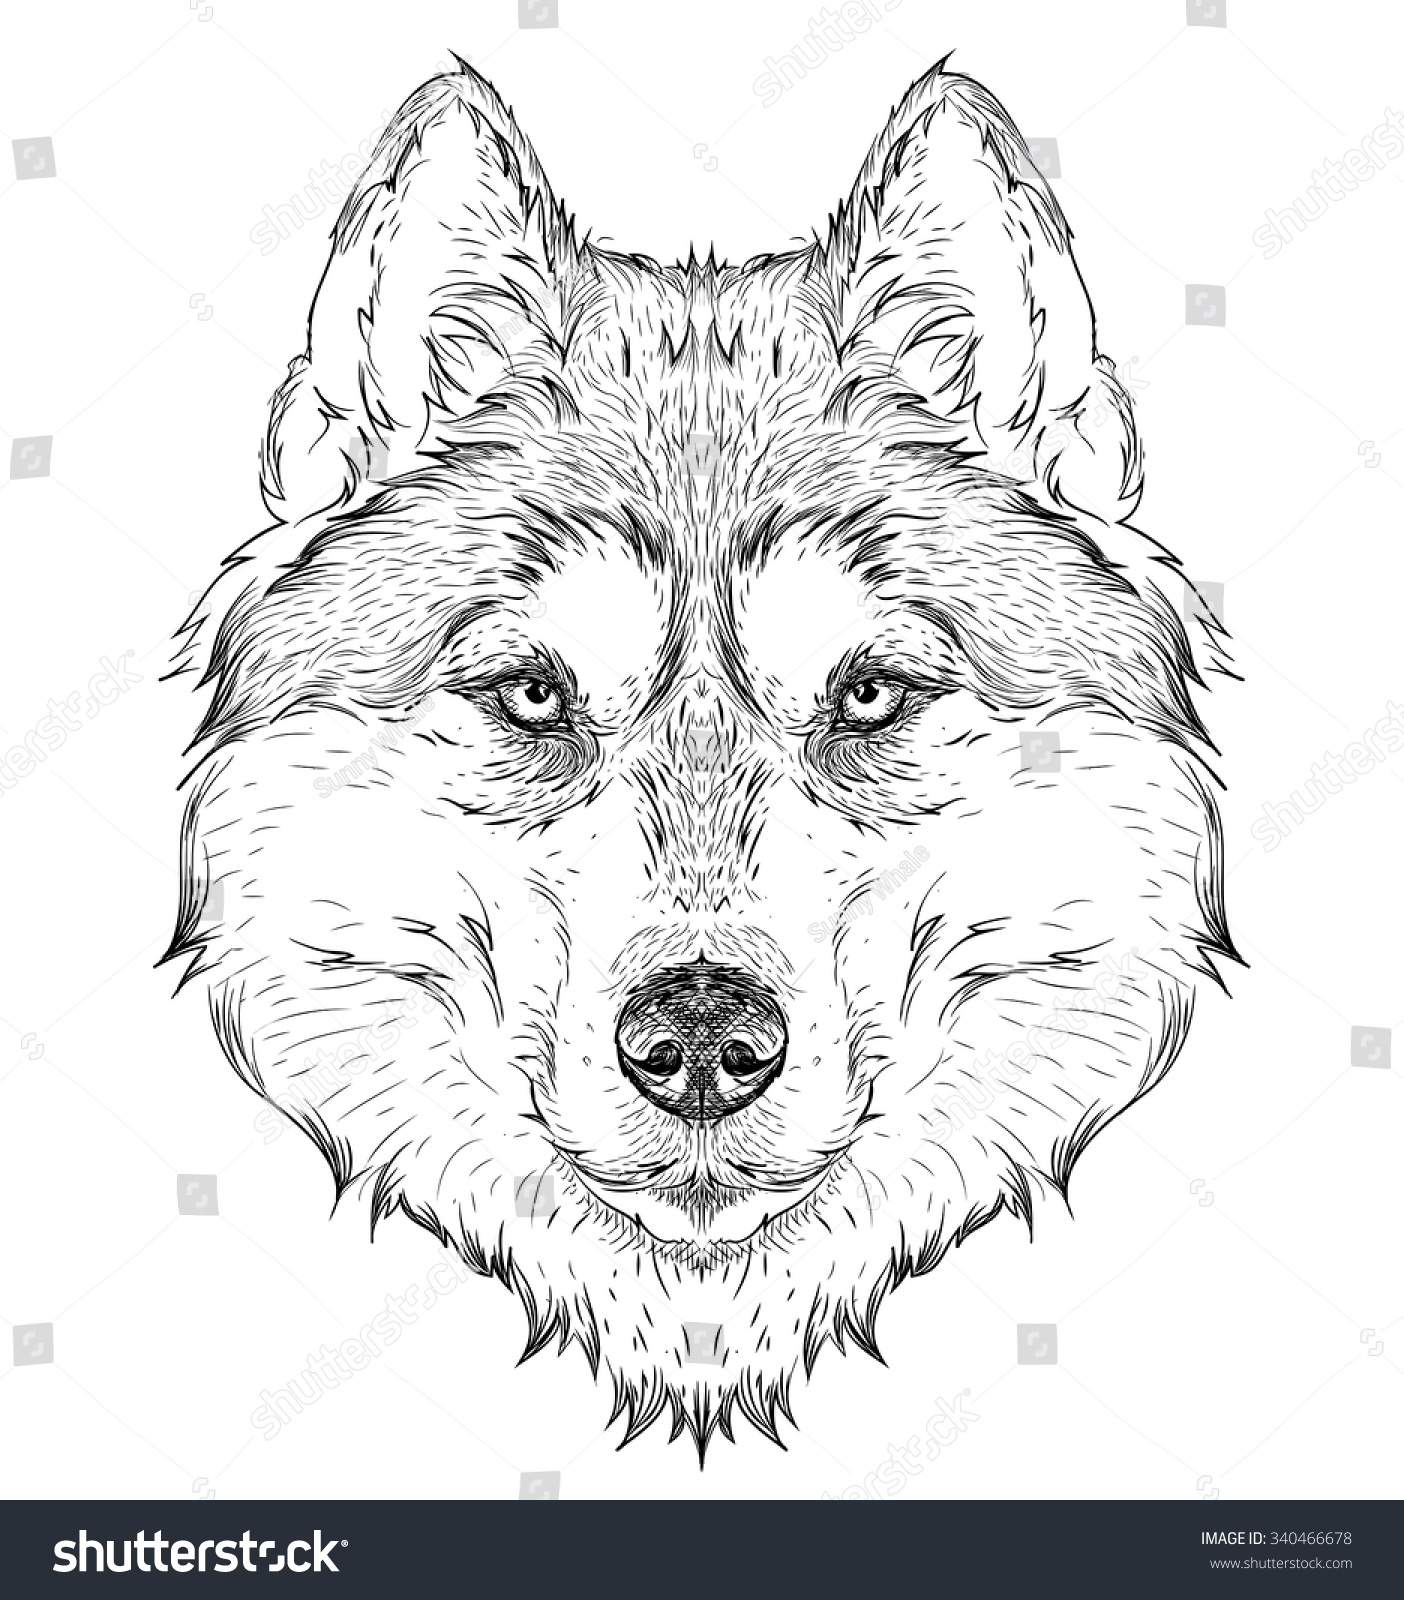 Gallery For gt Simple Husky Drawing